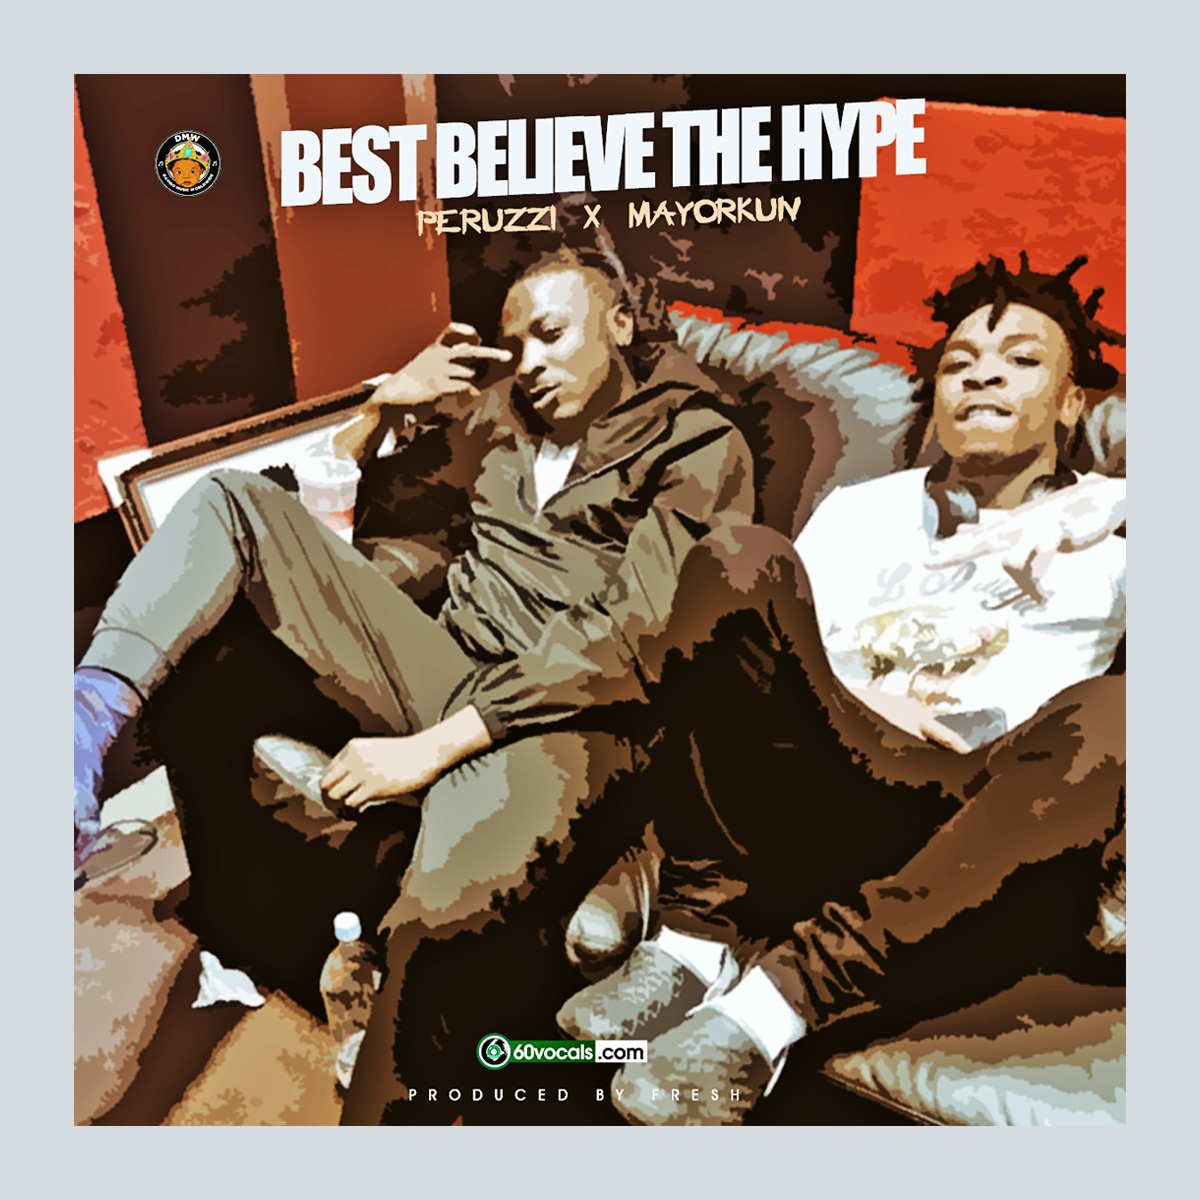 MUSIC: Peruzzi ft. Mayorkun - Best Believe The Hype